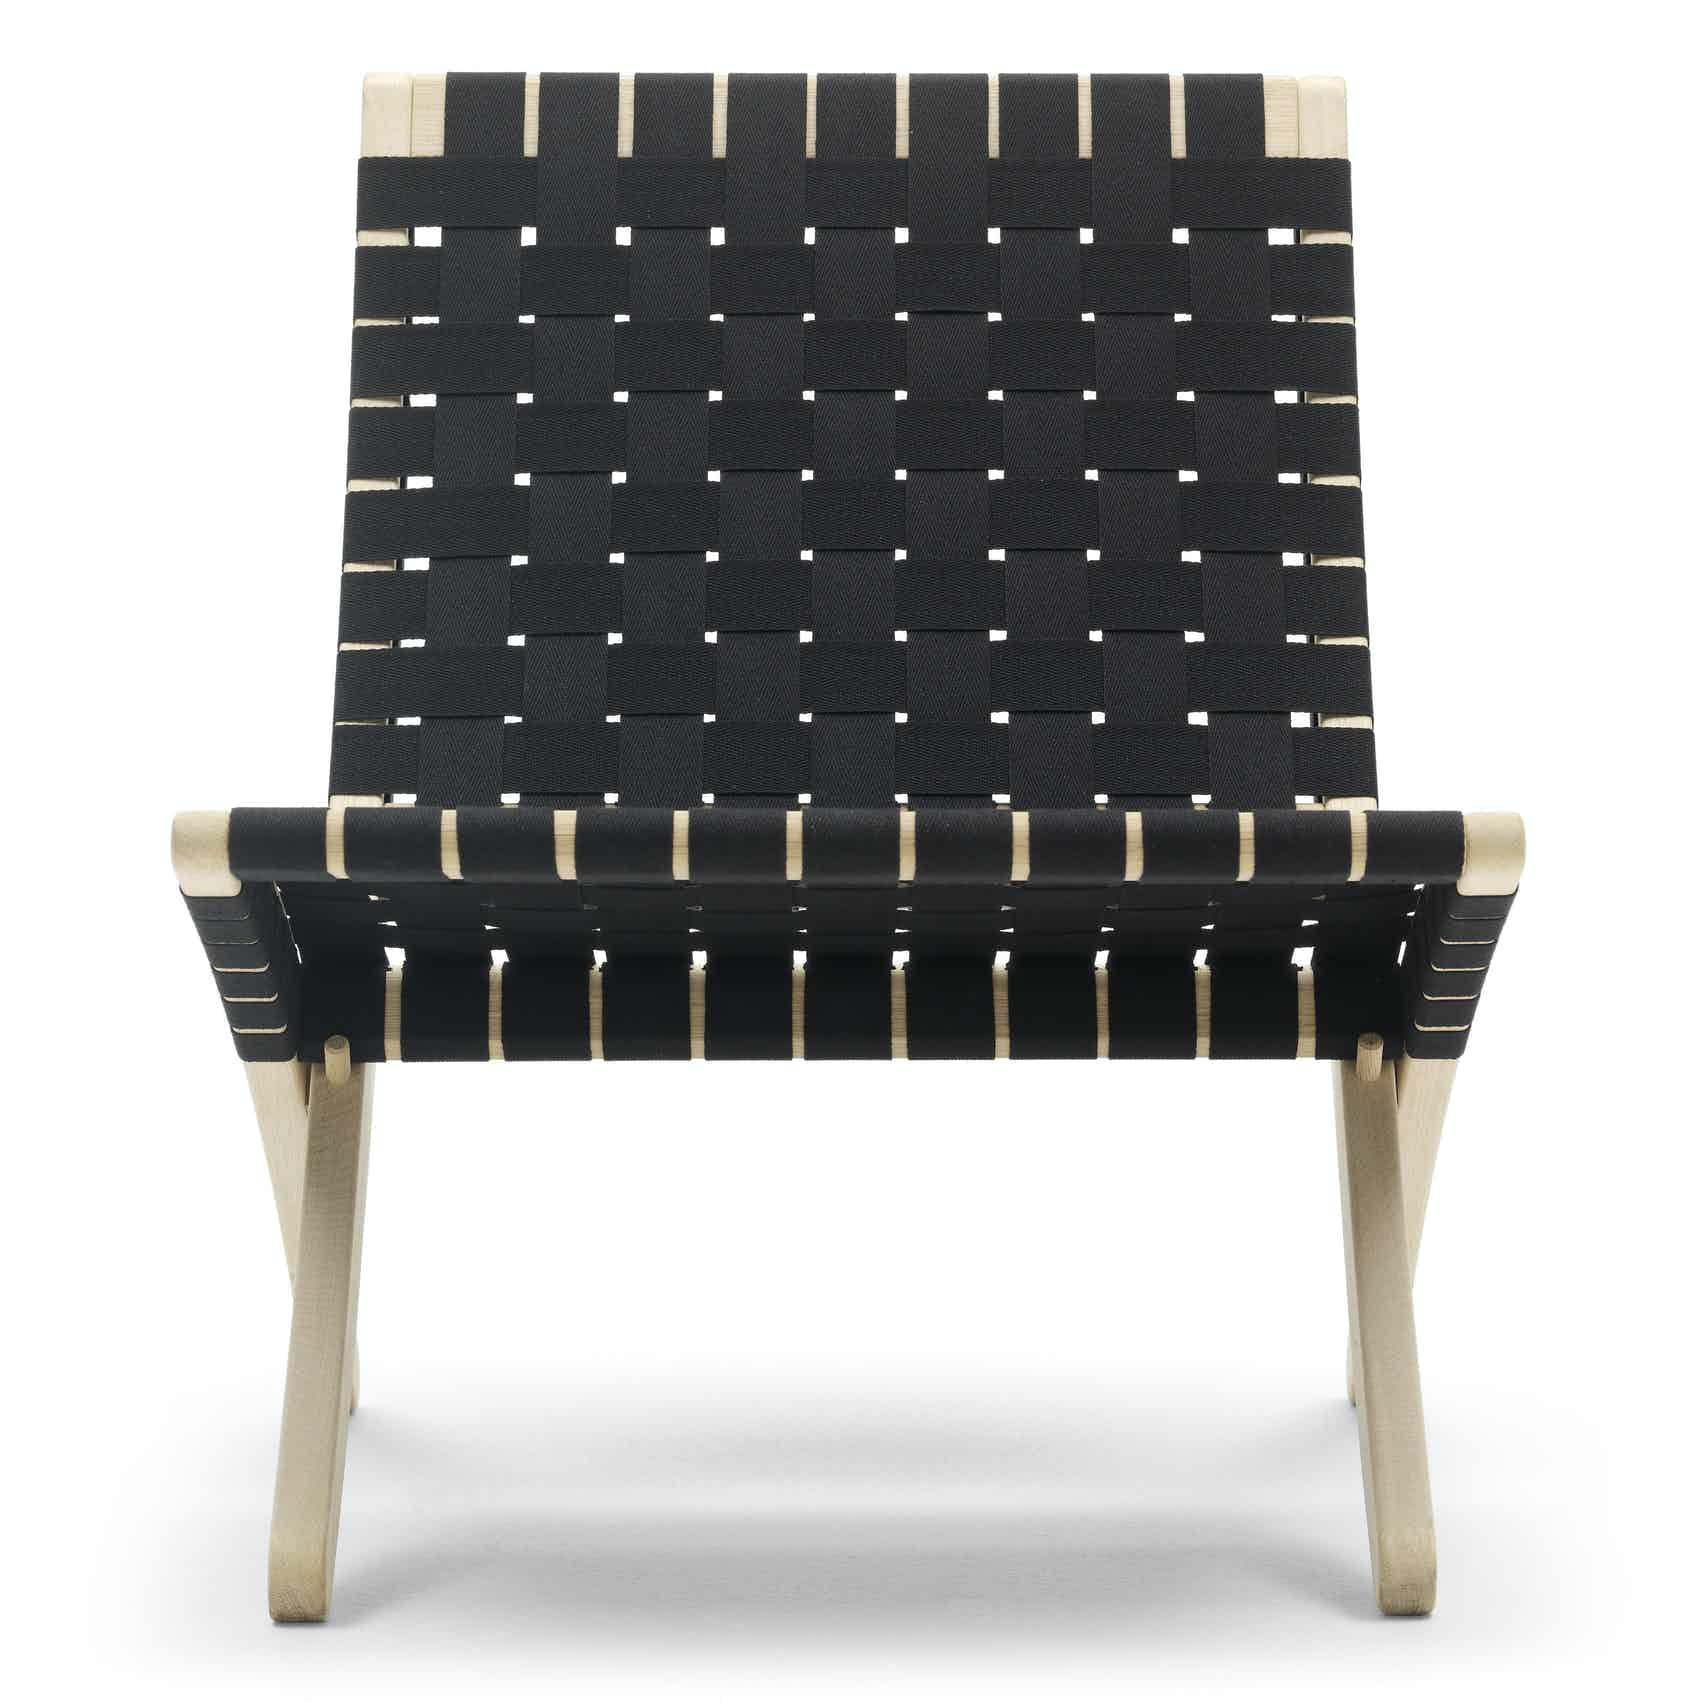 Carl-hansen-son-black-front-mg501-haute-living